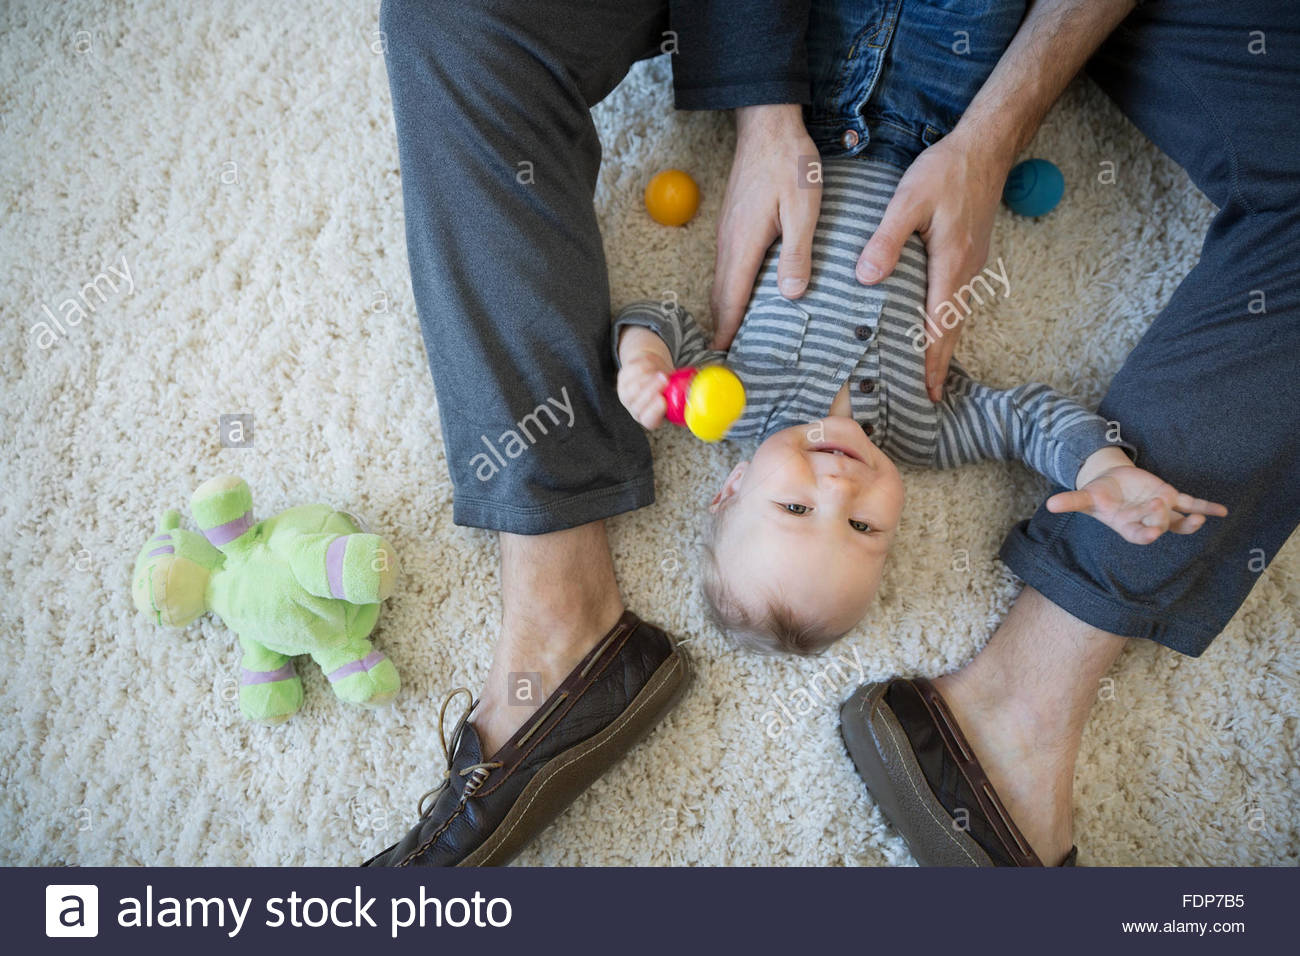 directly above baby son laying - Stock Image